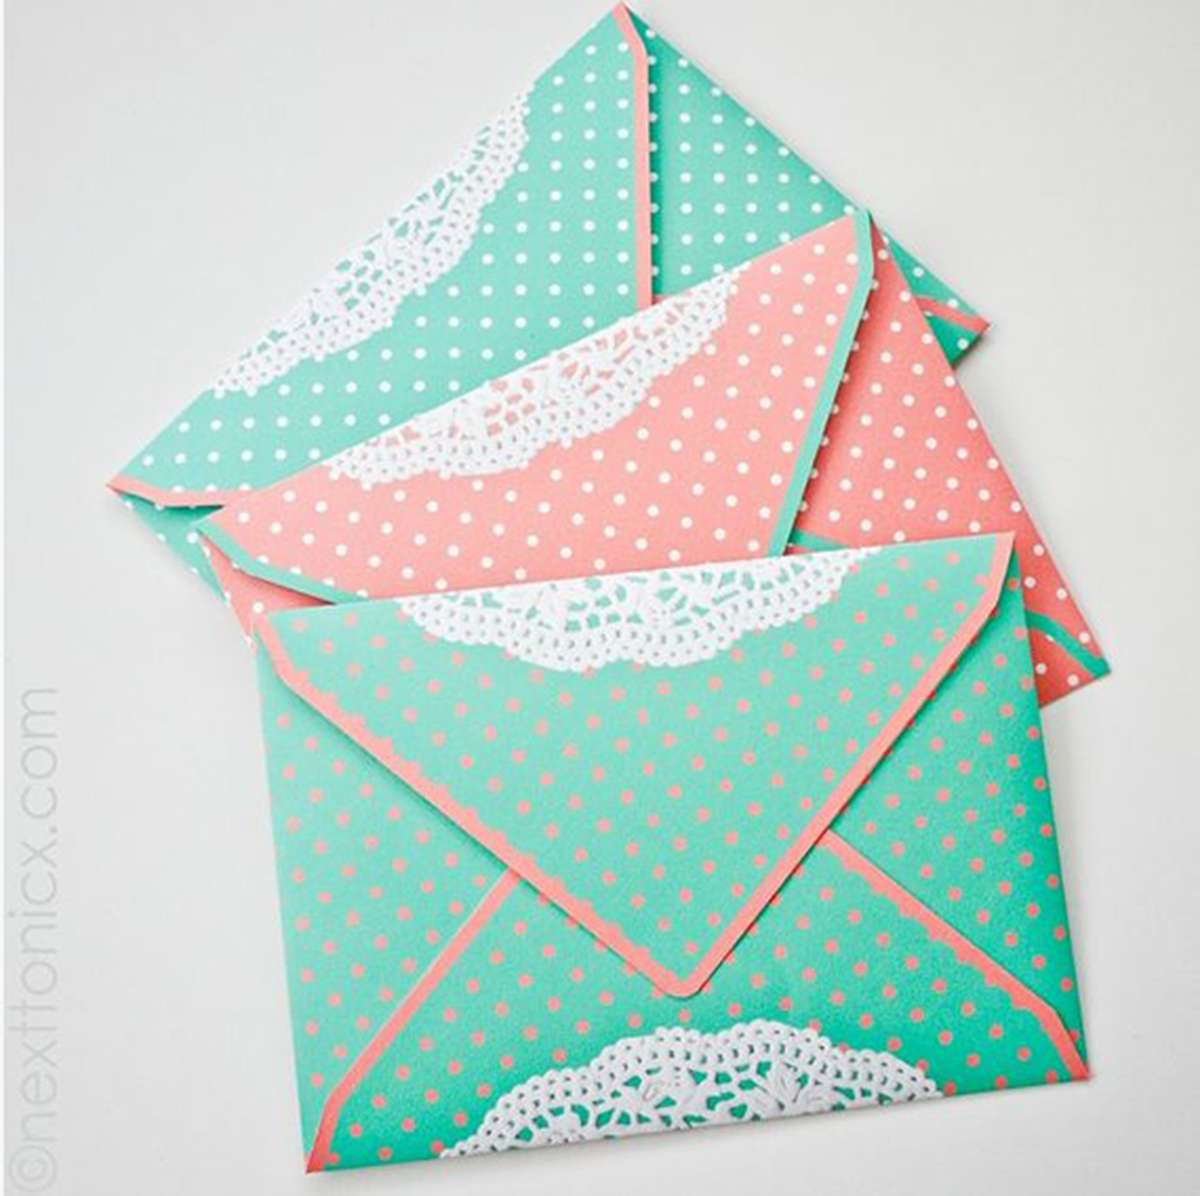 Doily envelope DIY